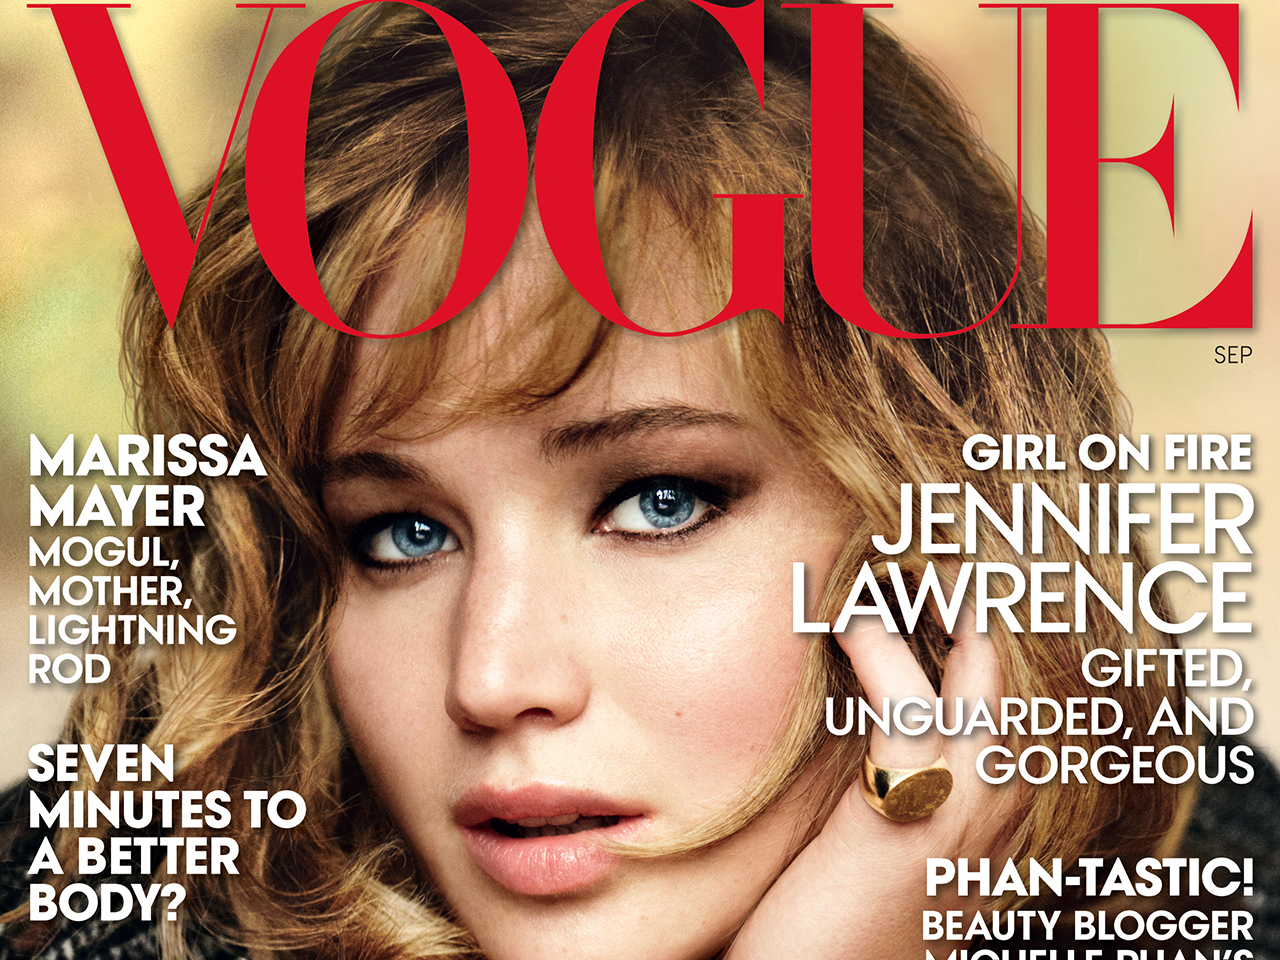 This magazine cover image shot by Mario Testino  and released by Vogue shows actress Jennifer Lawrence on the cover of the September 2013 issue. The i...